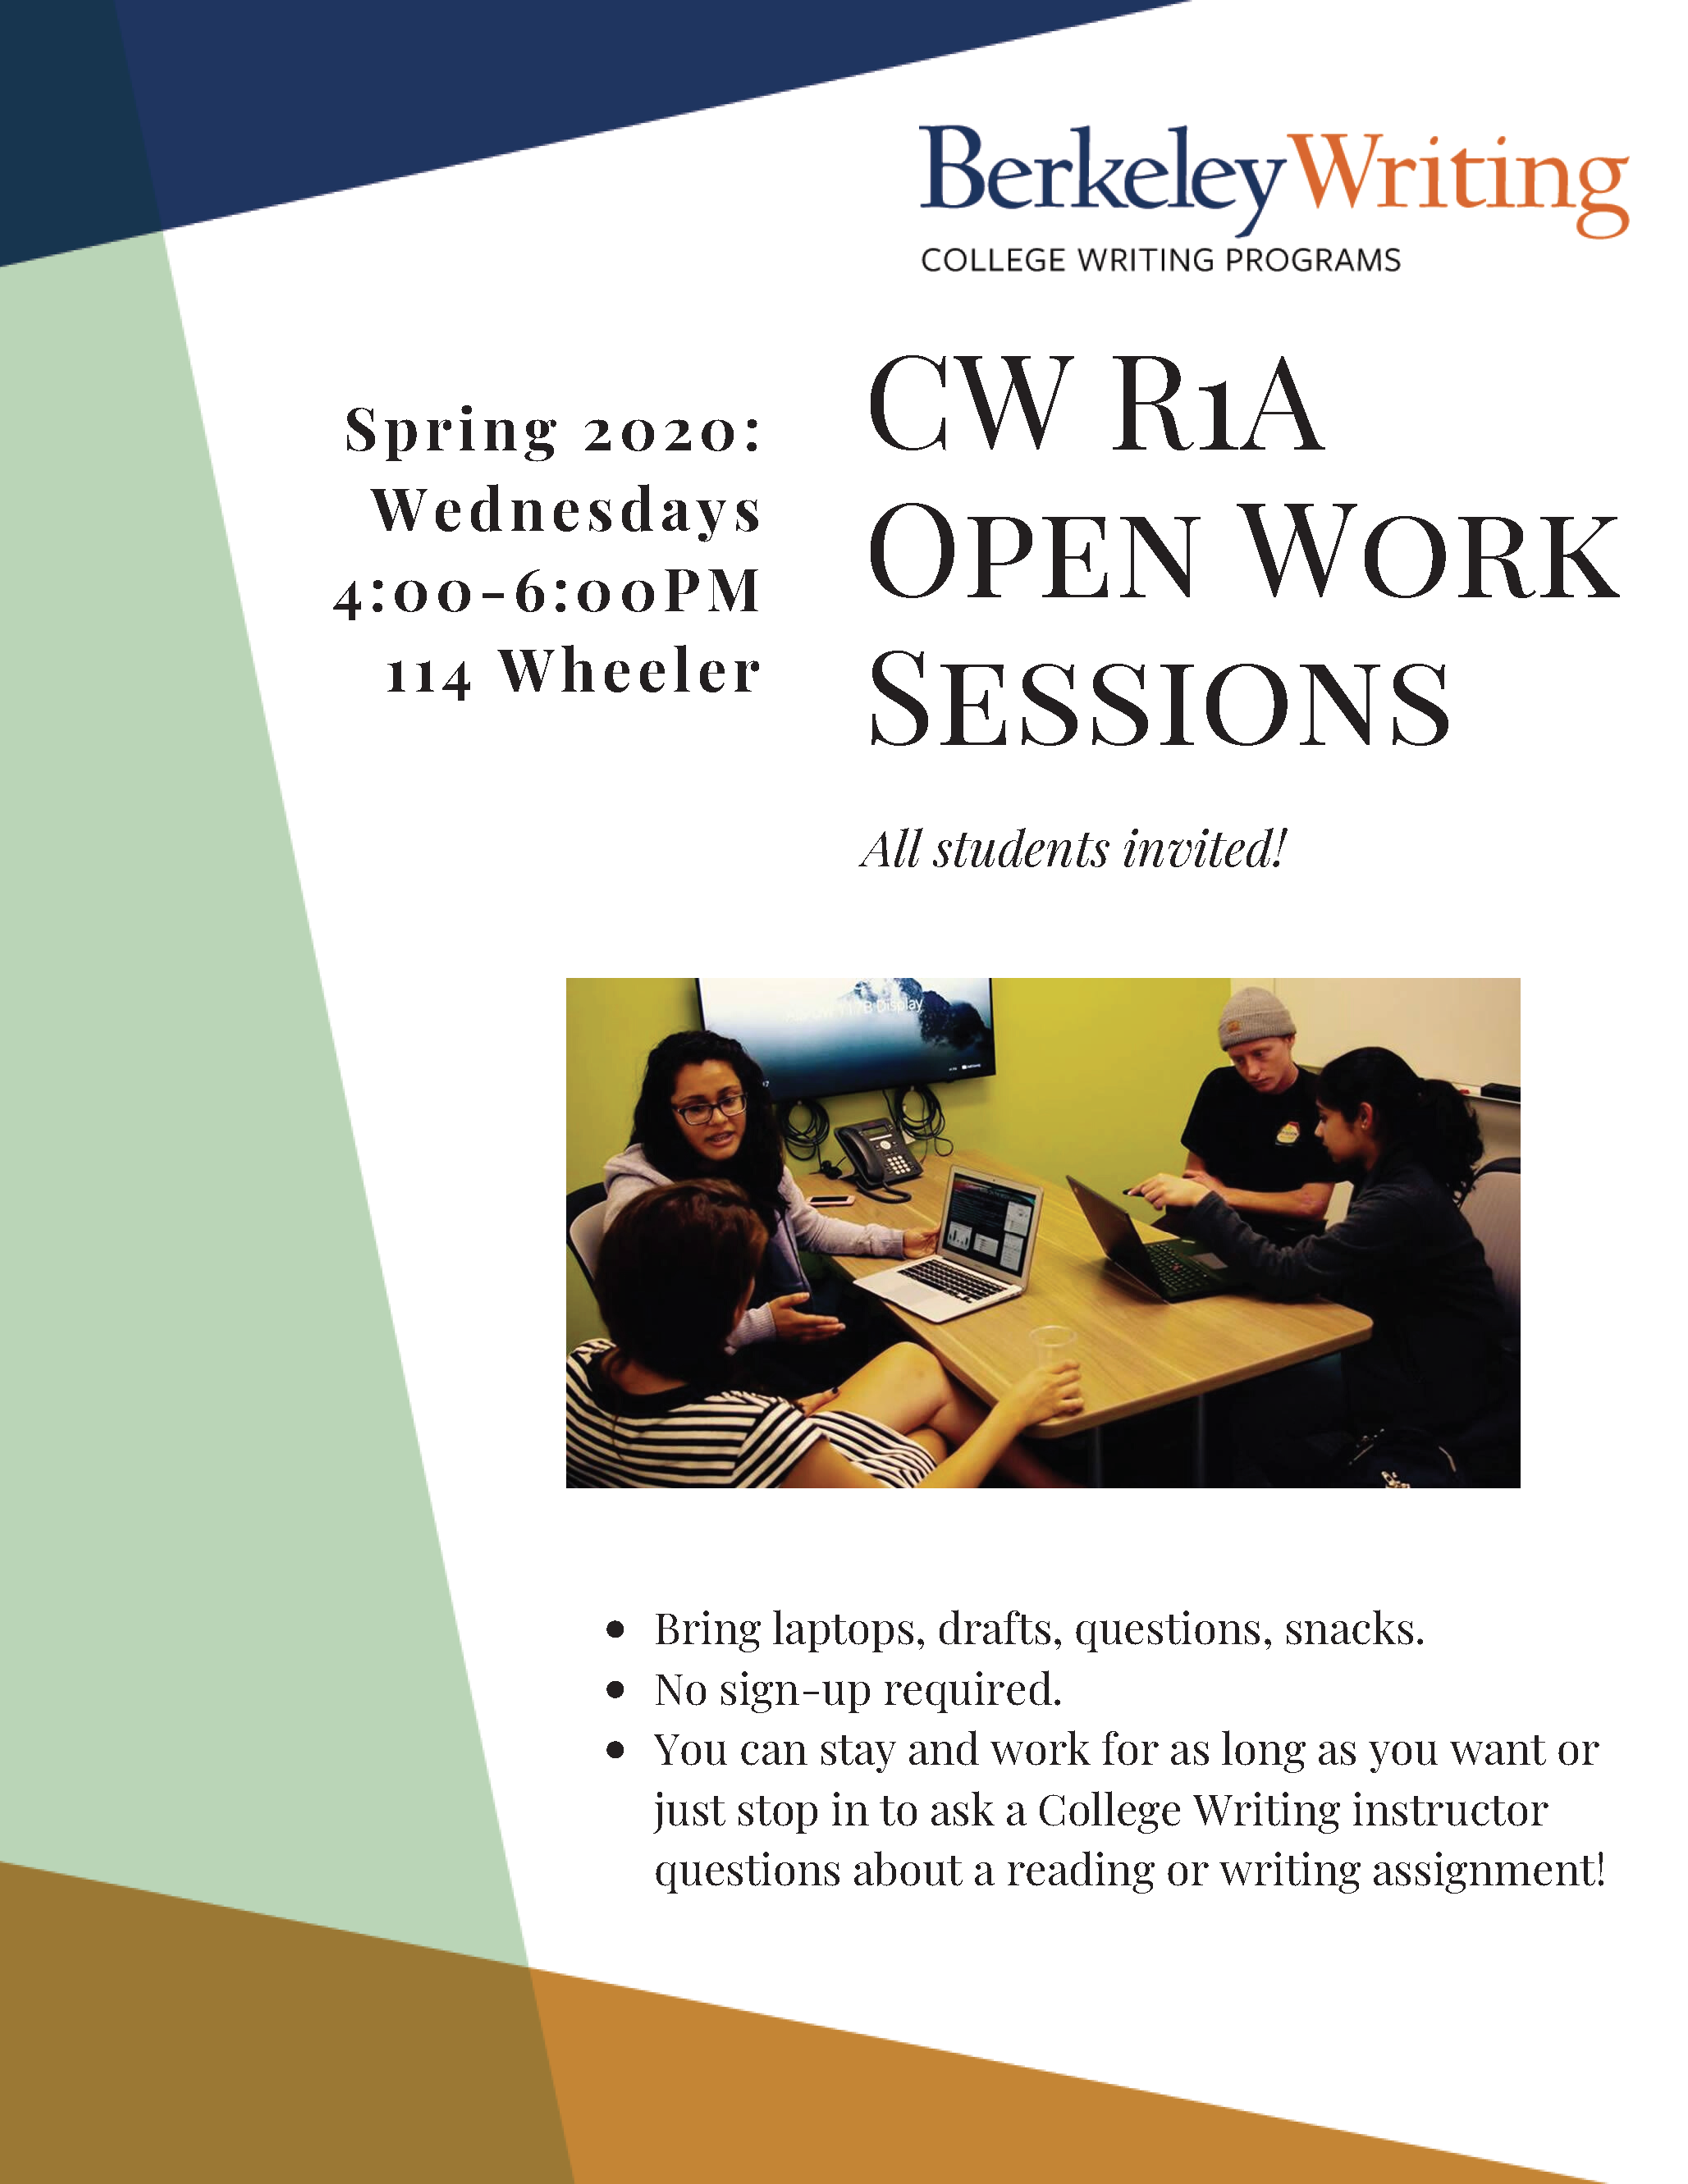 CWR1A Open Work Sessions Flyer